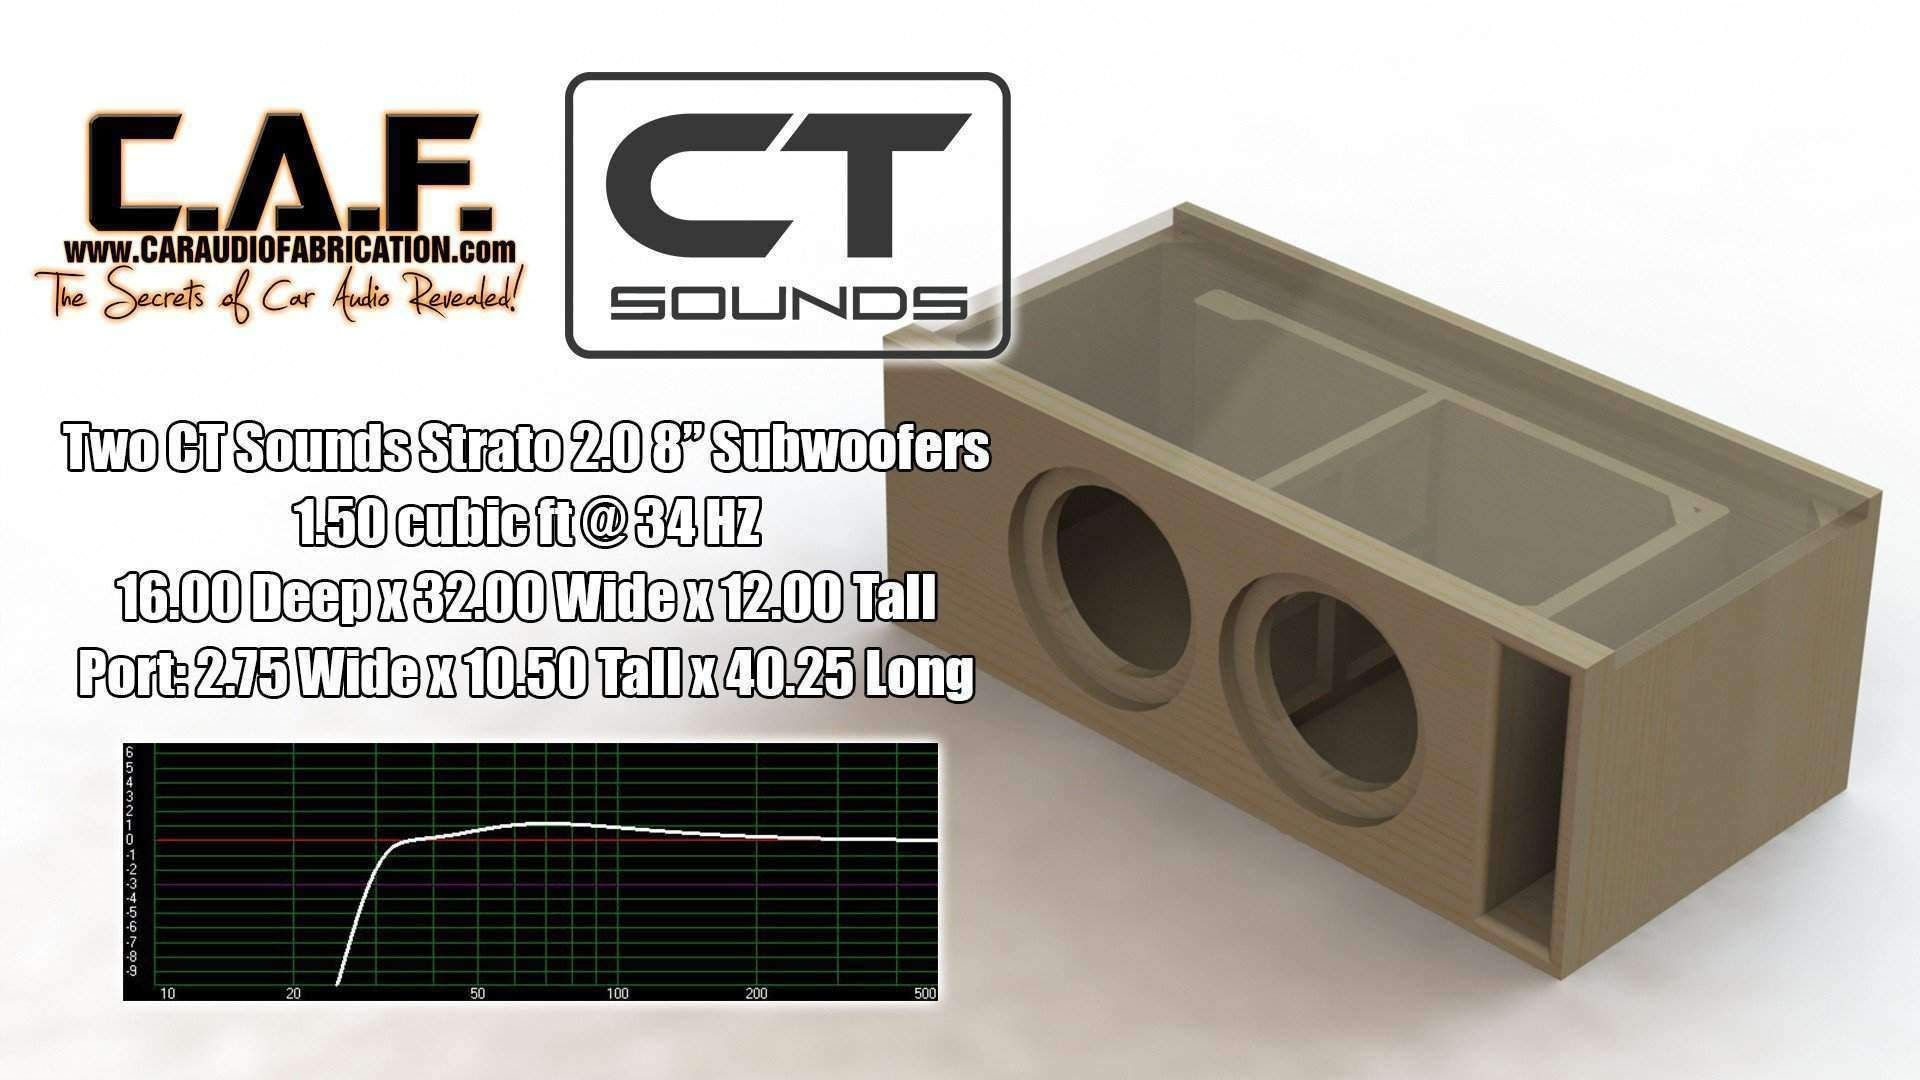 Dual 8 Inch Ported Subwoofer Box Design Subwoofer Box Design Subwoofer Box Box Design